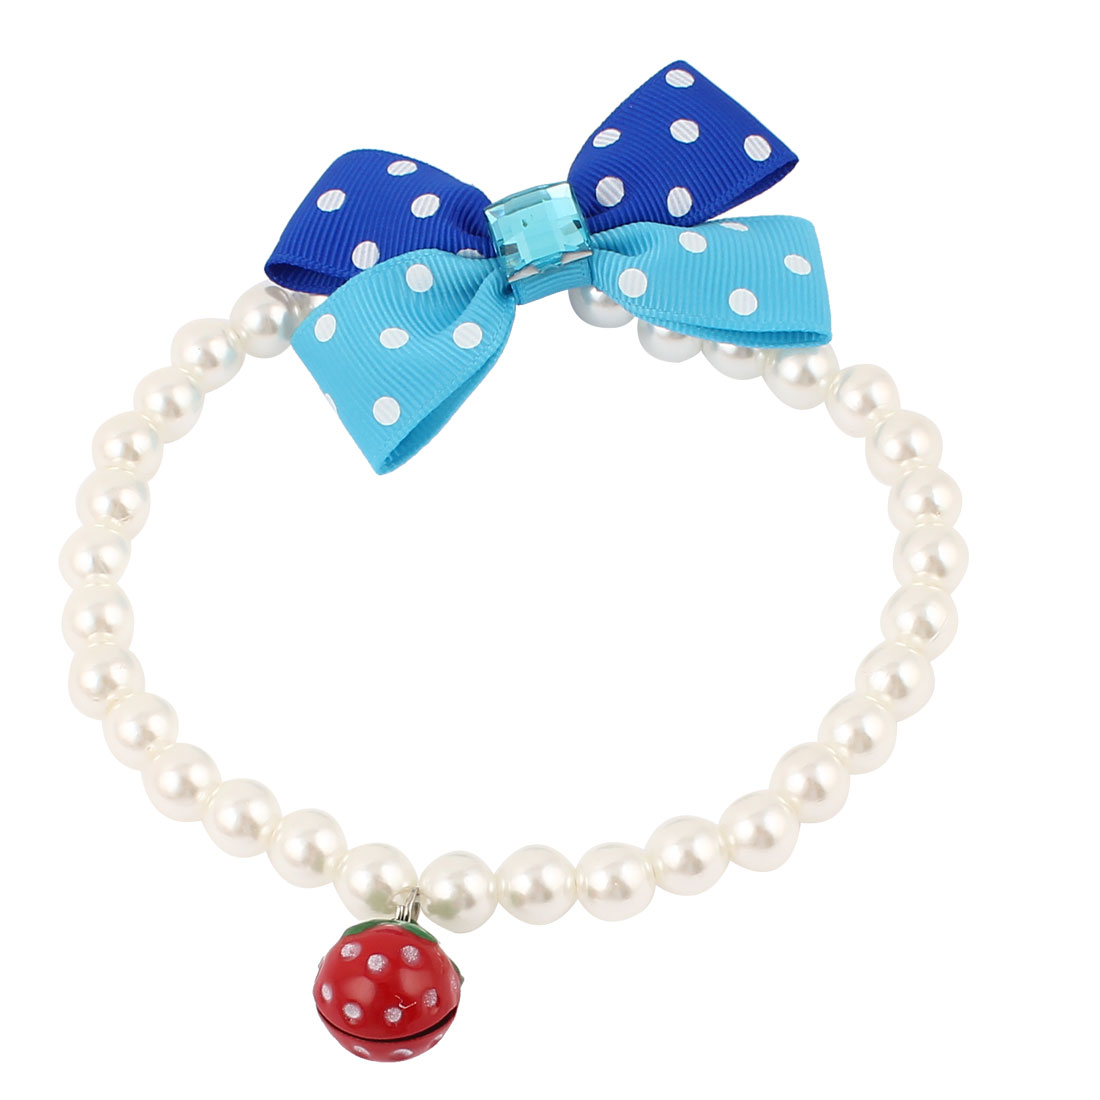 Metal Bell Pendant Bowknot Accent Pet Dog Plastic Beads Pearls Collar Necklace White M